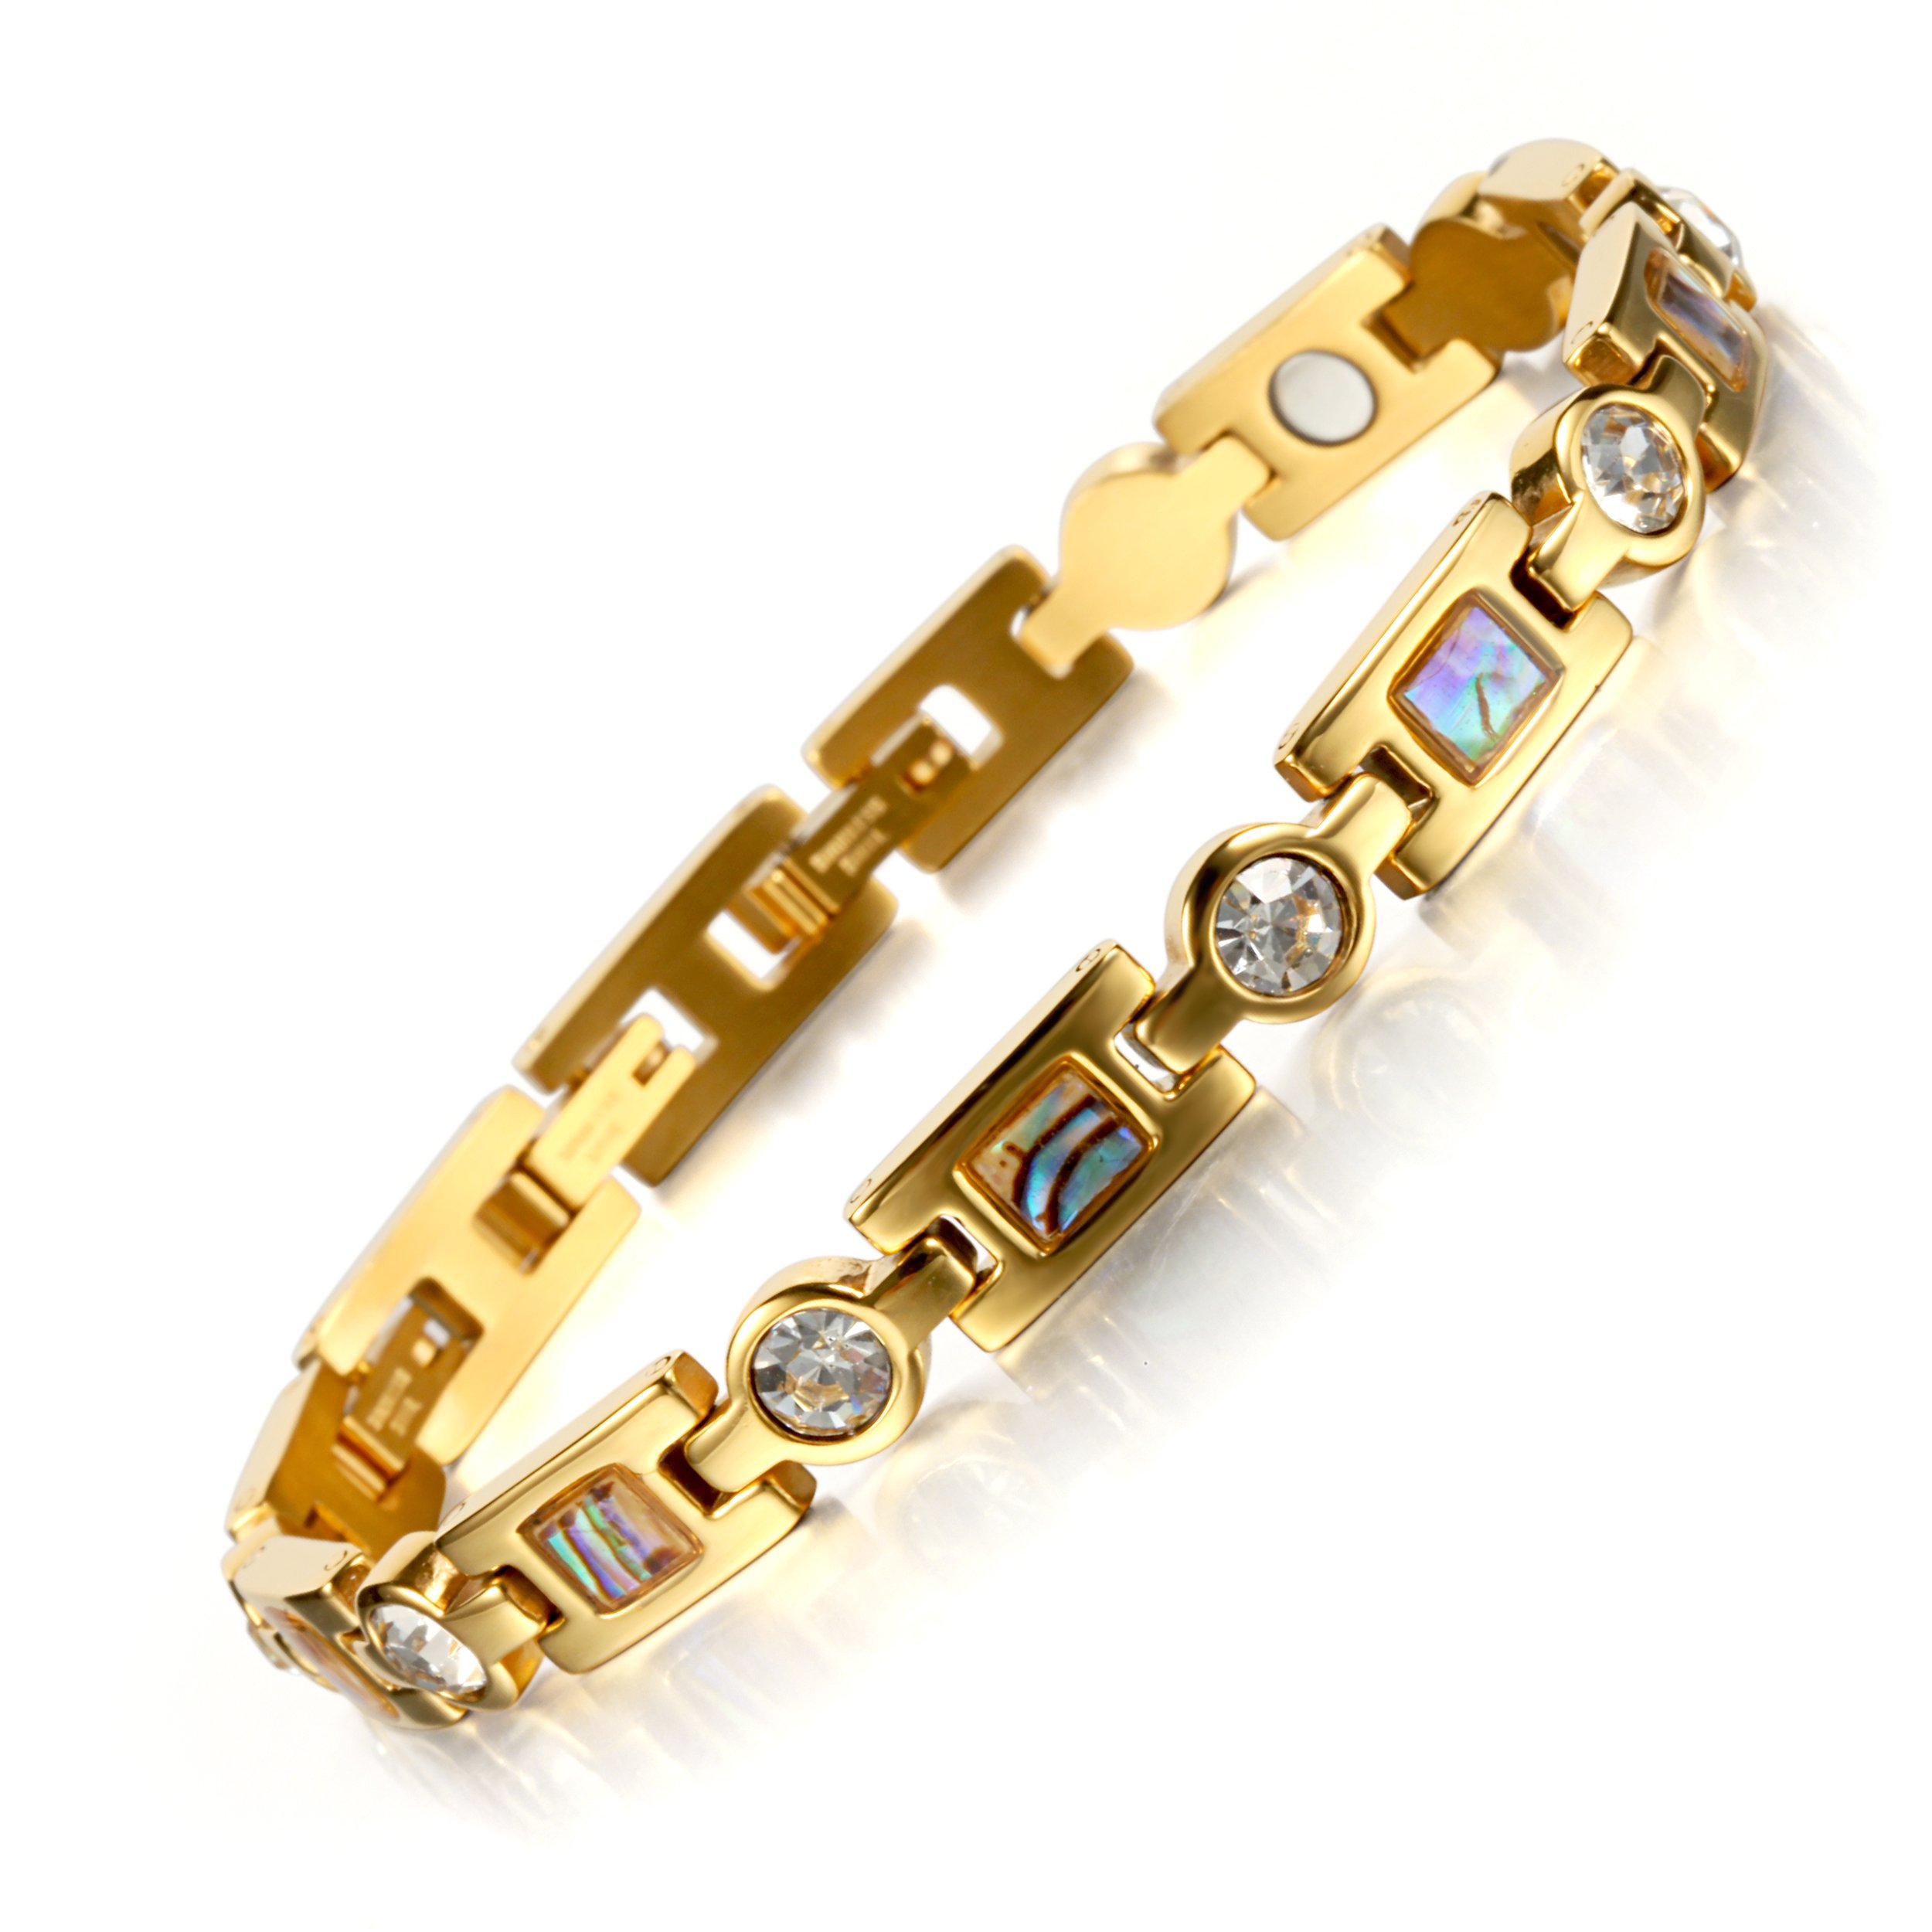 Rainso Titanium Steel Magnetic Therapy Bracelets for Women Rhinestone Health WristBand with 3 Smart Buckle (Gold)